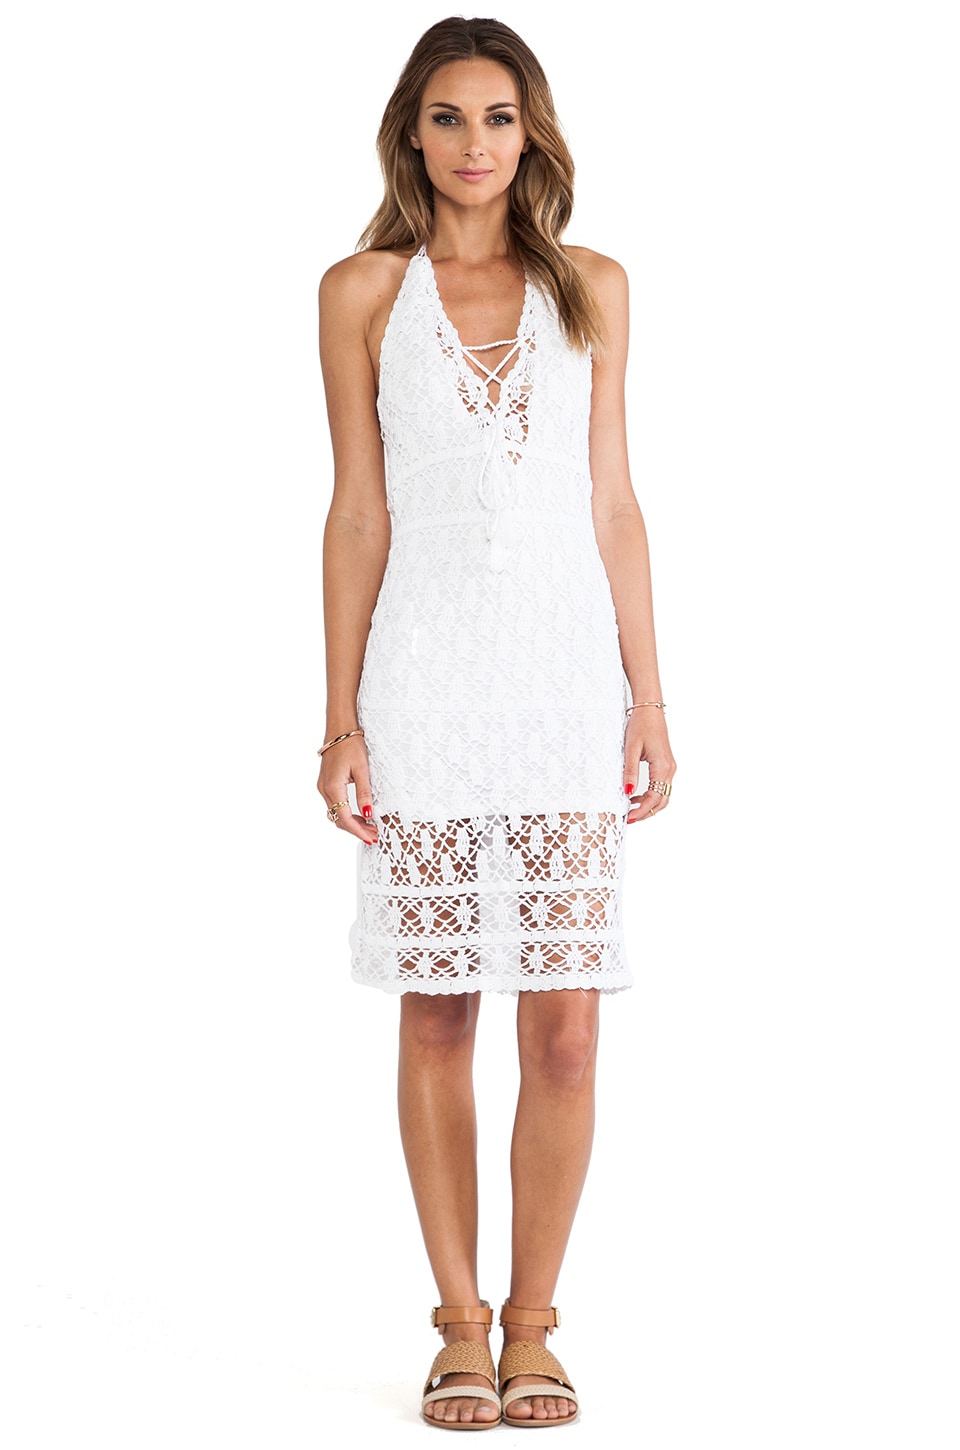 Anna Kosturova Aerin Halter Mini Dress in White